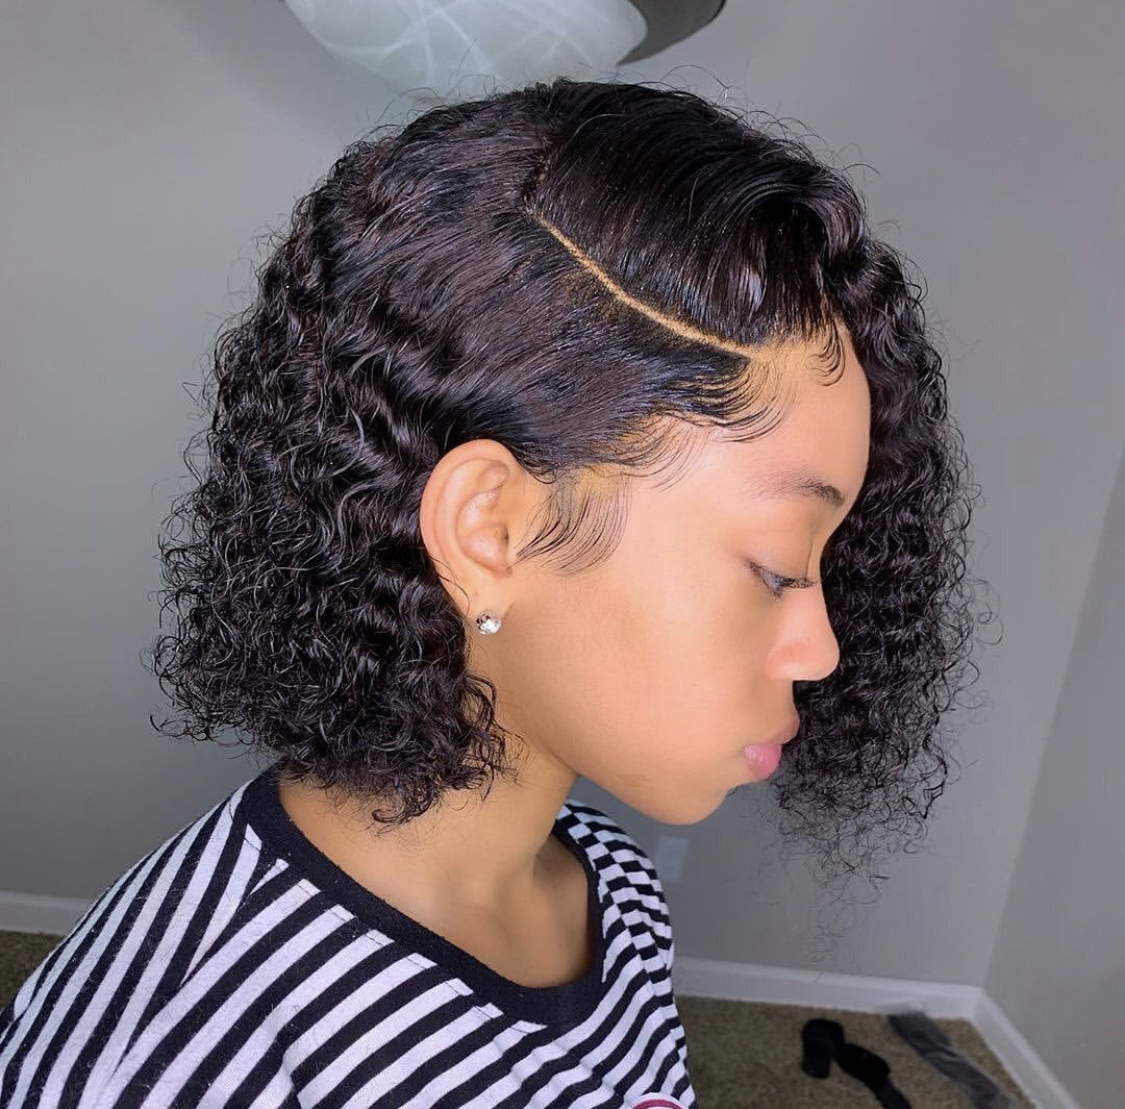 Wholesale Black Baby Hairstyles Buy Cheap In Bulk From China Suppliers With Coupon Dhgate Com